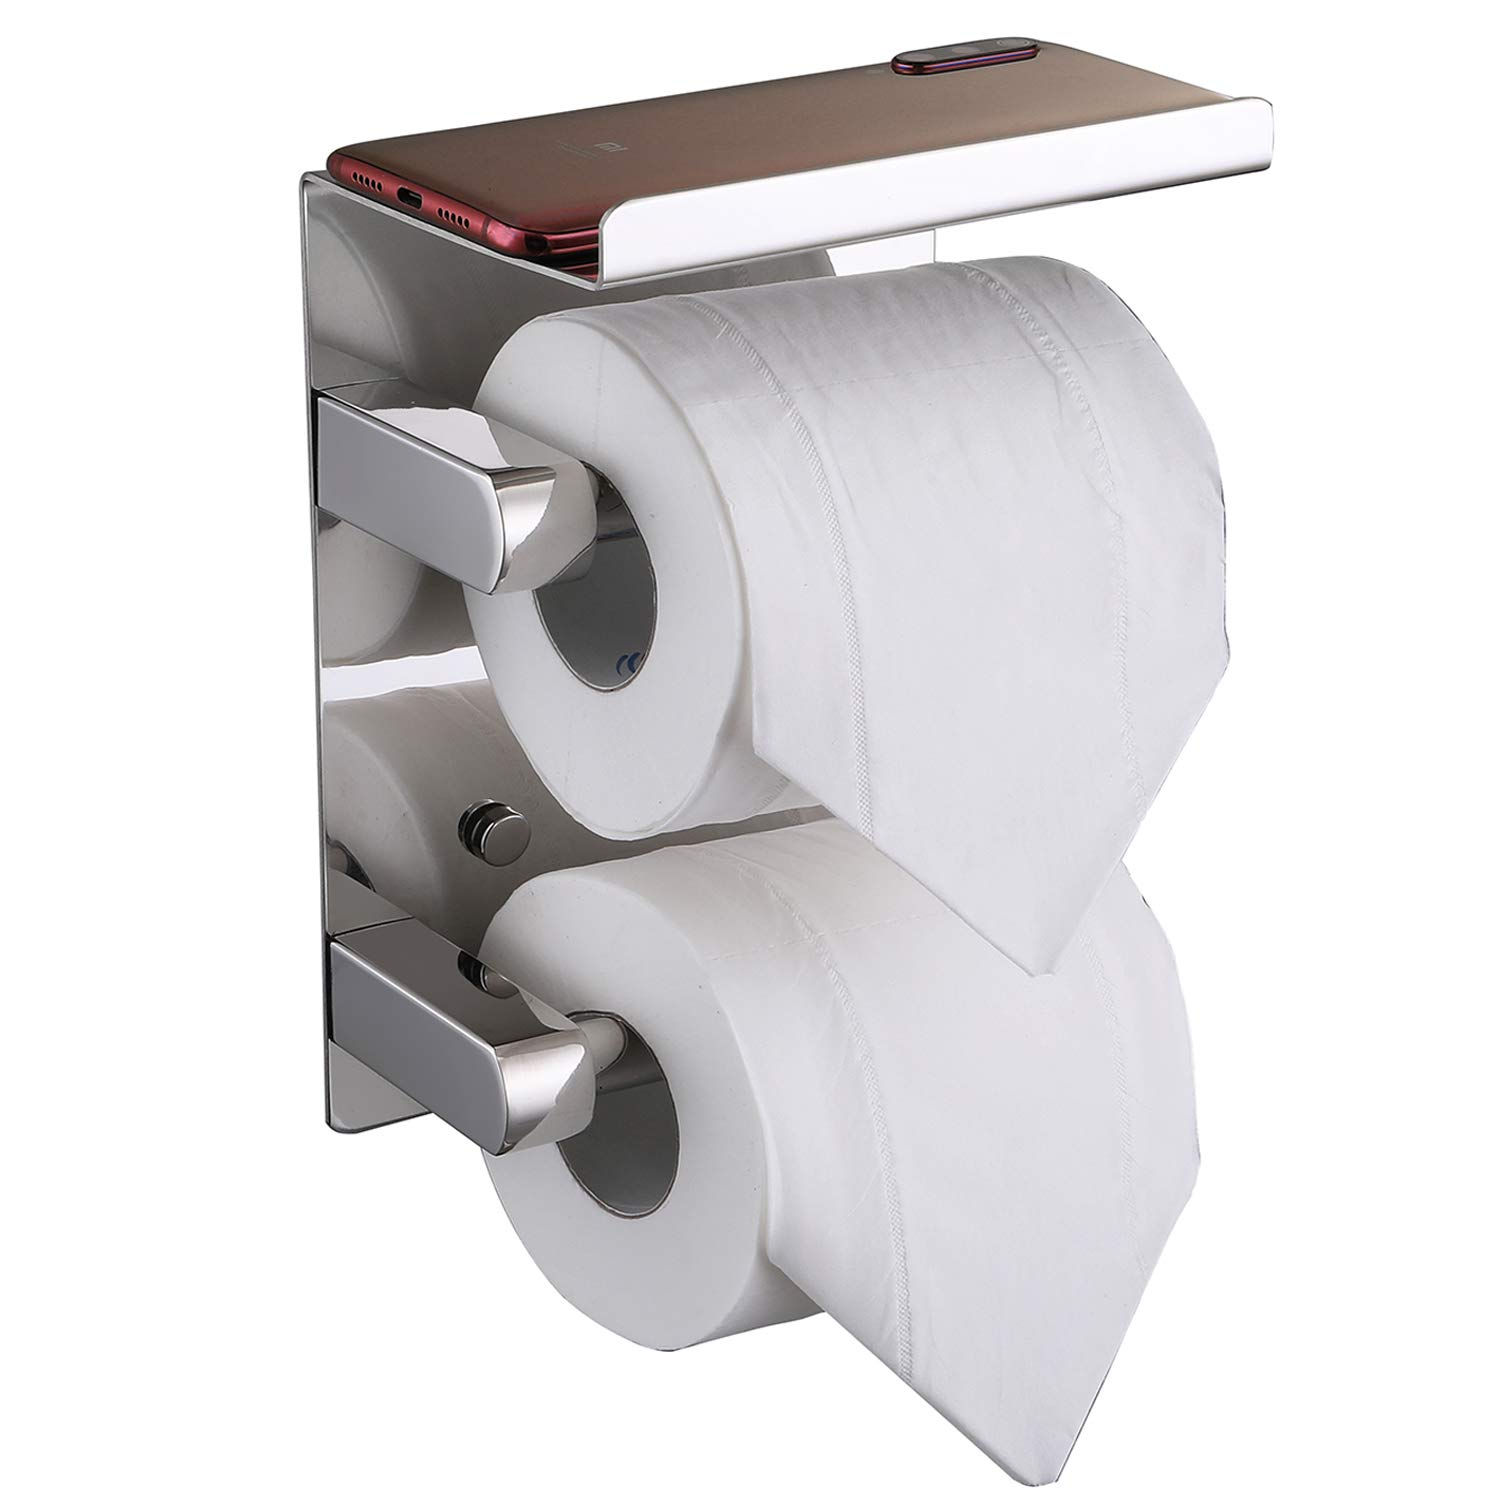 FANHAO Upgrade Double Roll Toilet Paper Holder Chrome with Phone Shelf, SUS 304 Stainless Steel Bathroom Accessories Tissue Roll Dispenser Storage Rack Multi-Purpose Shelf Wall Mounted, Polished Steel